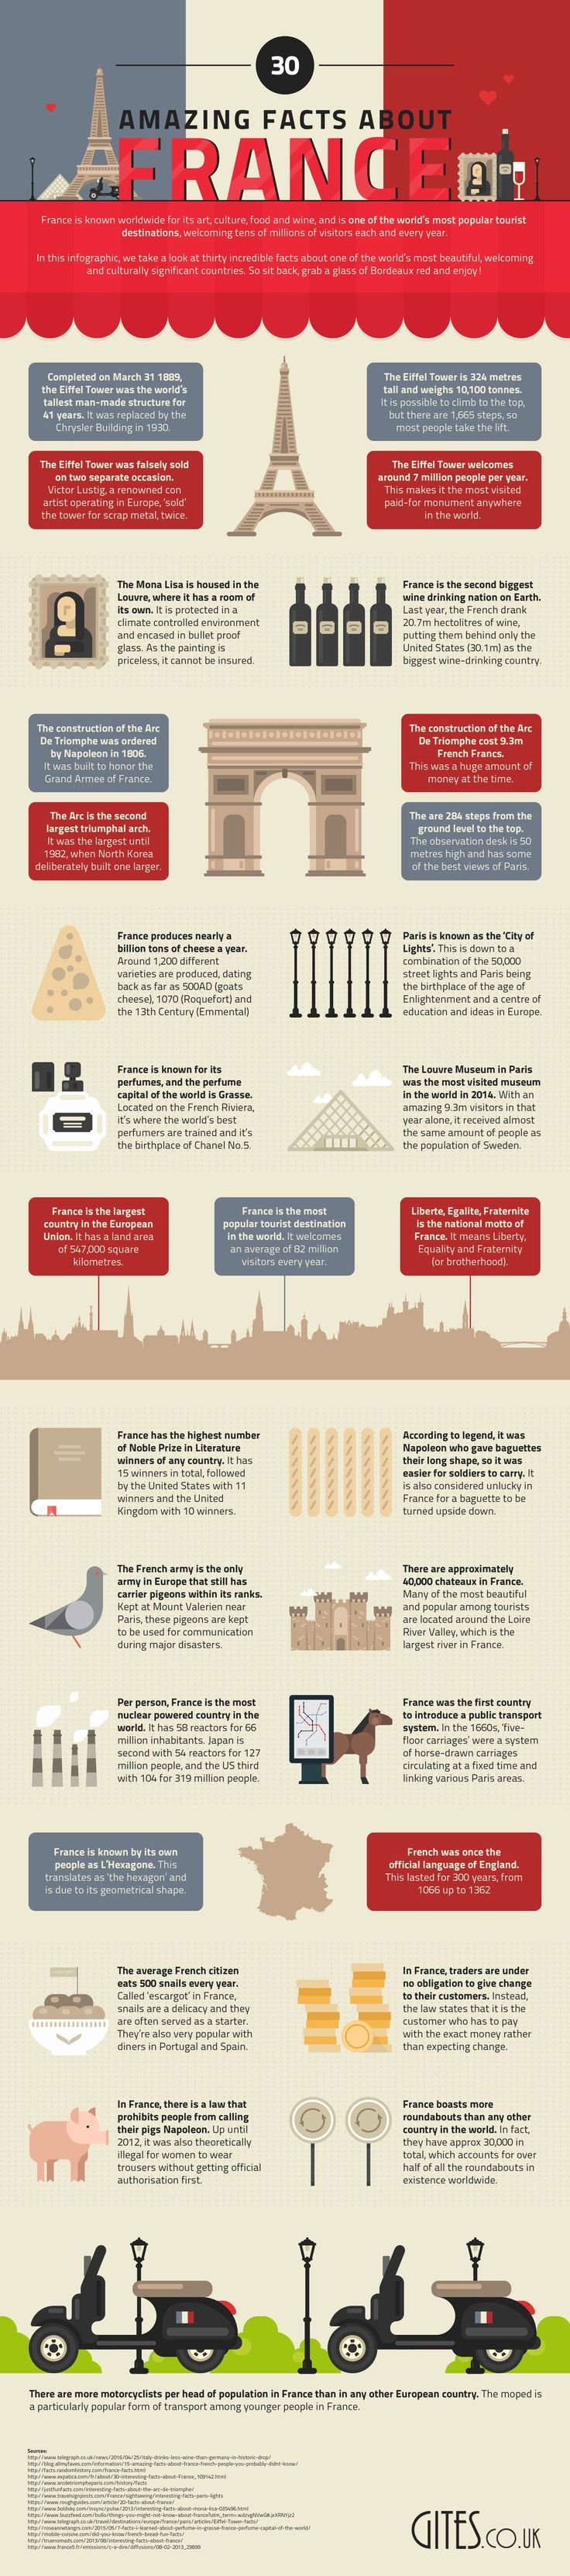 30 Interesting Facts About France #Infografía #Infographic #Travel